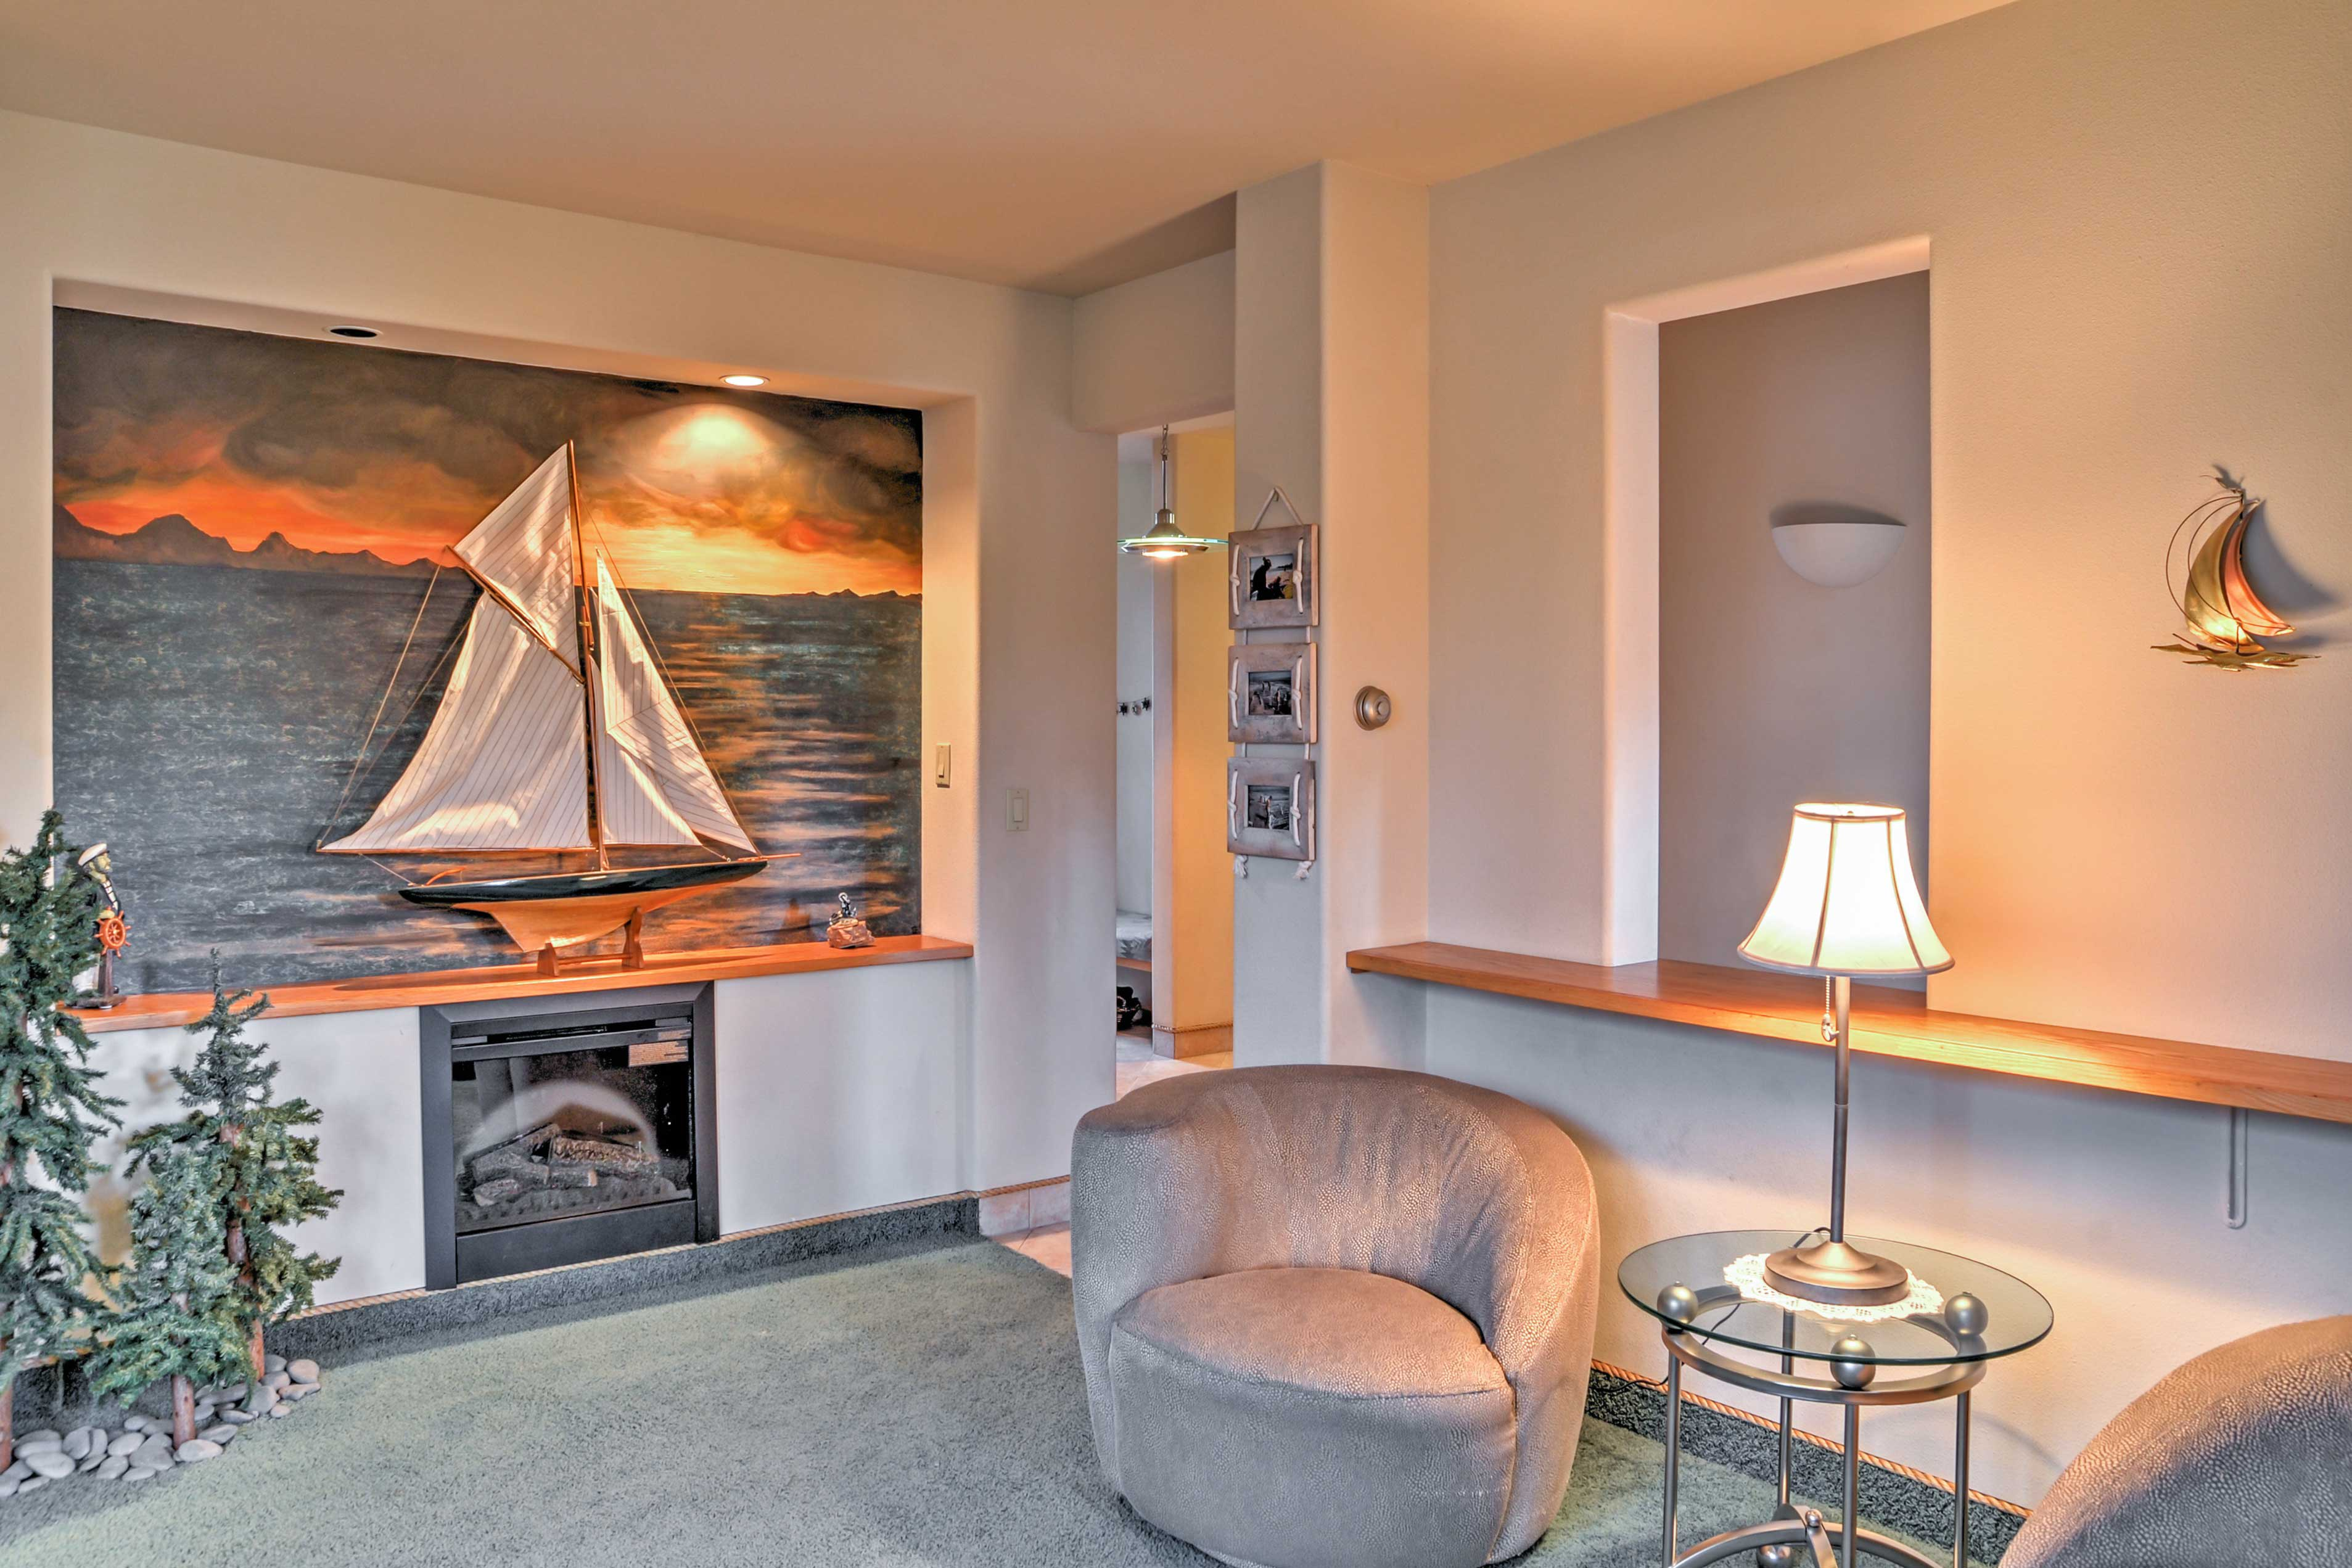 Relax by the warmth of the electric fireplace in this cozy living area.